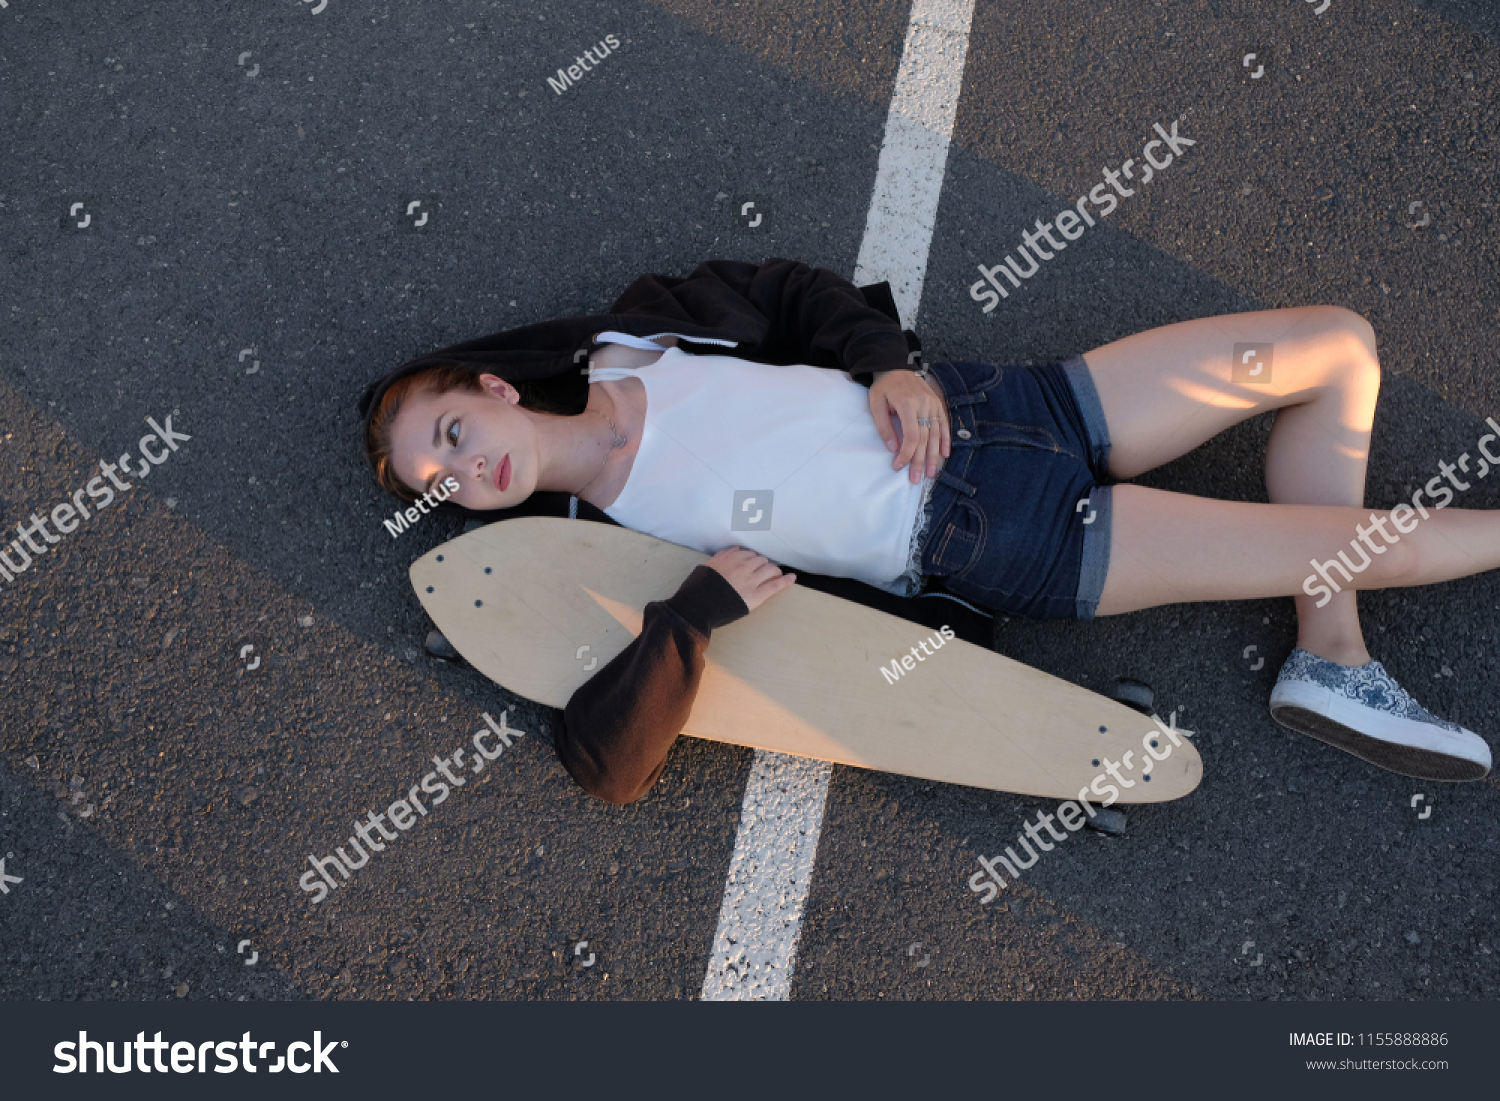 Street fashion  girl lying down with longboard on road surface in sunny day